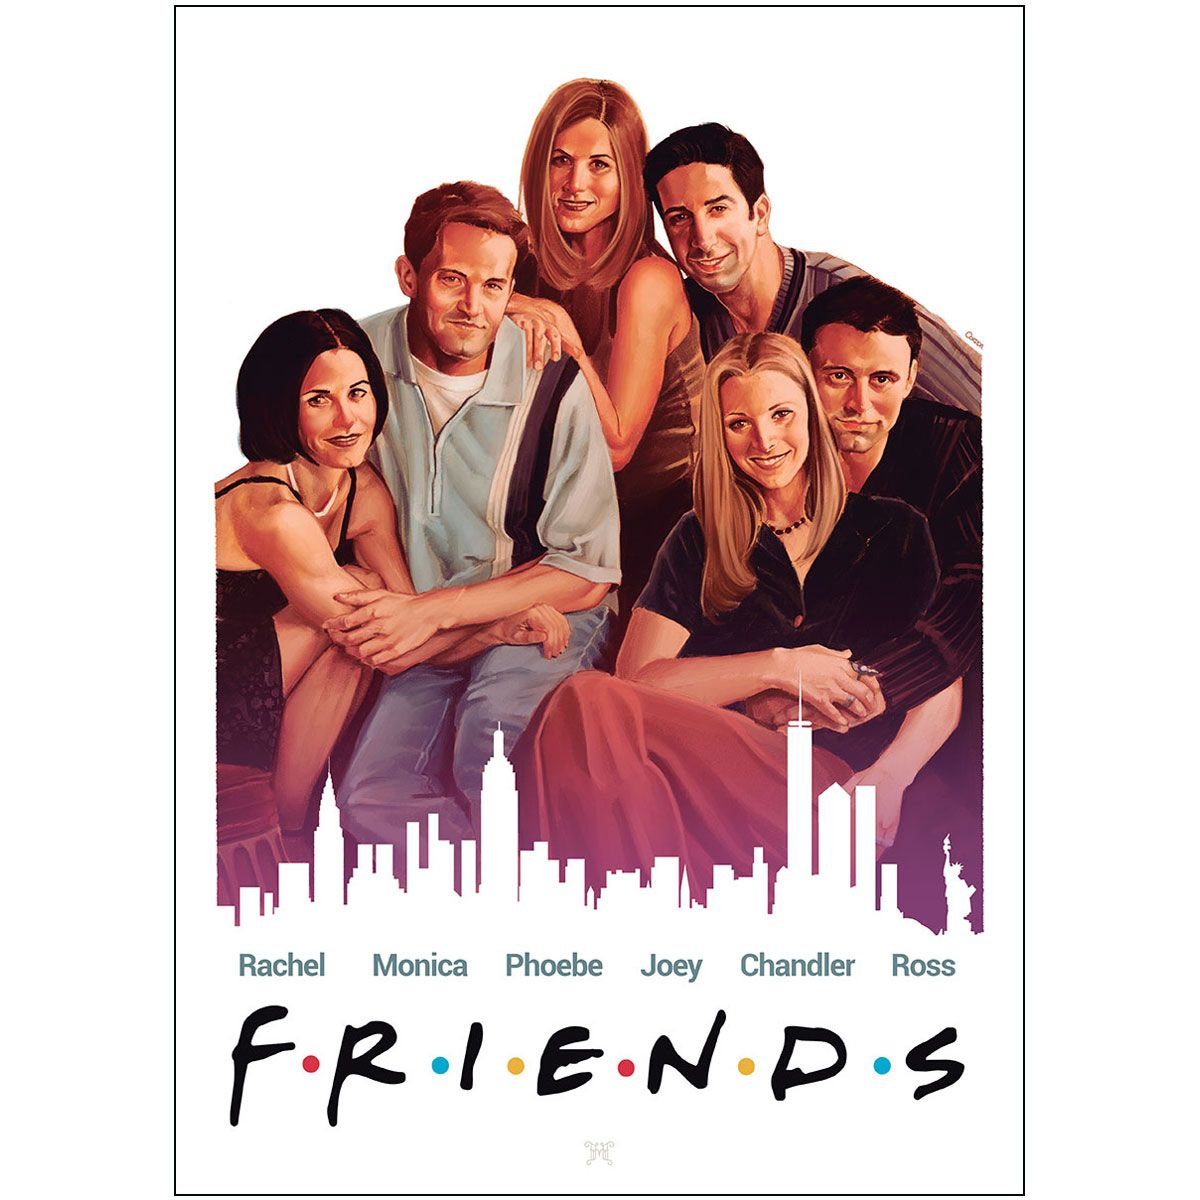 Friends (1994-2004) | Friends poster, Movies and tv shows ...